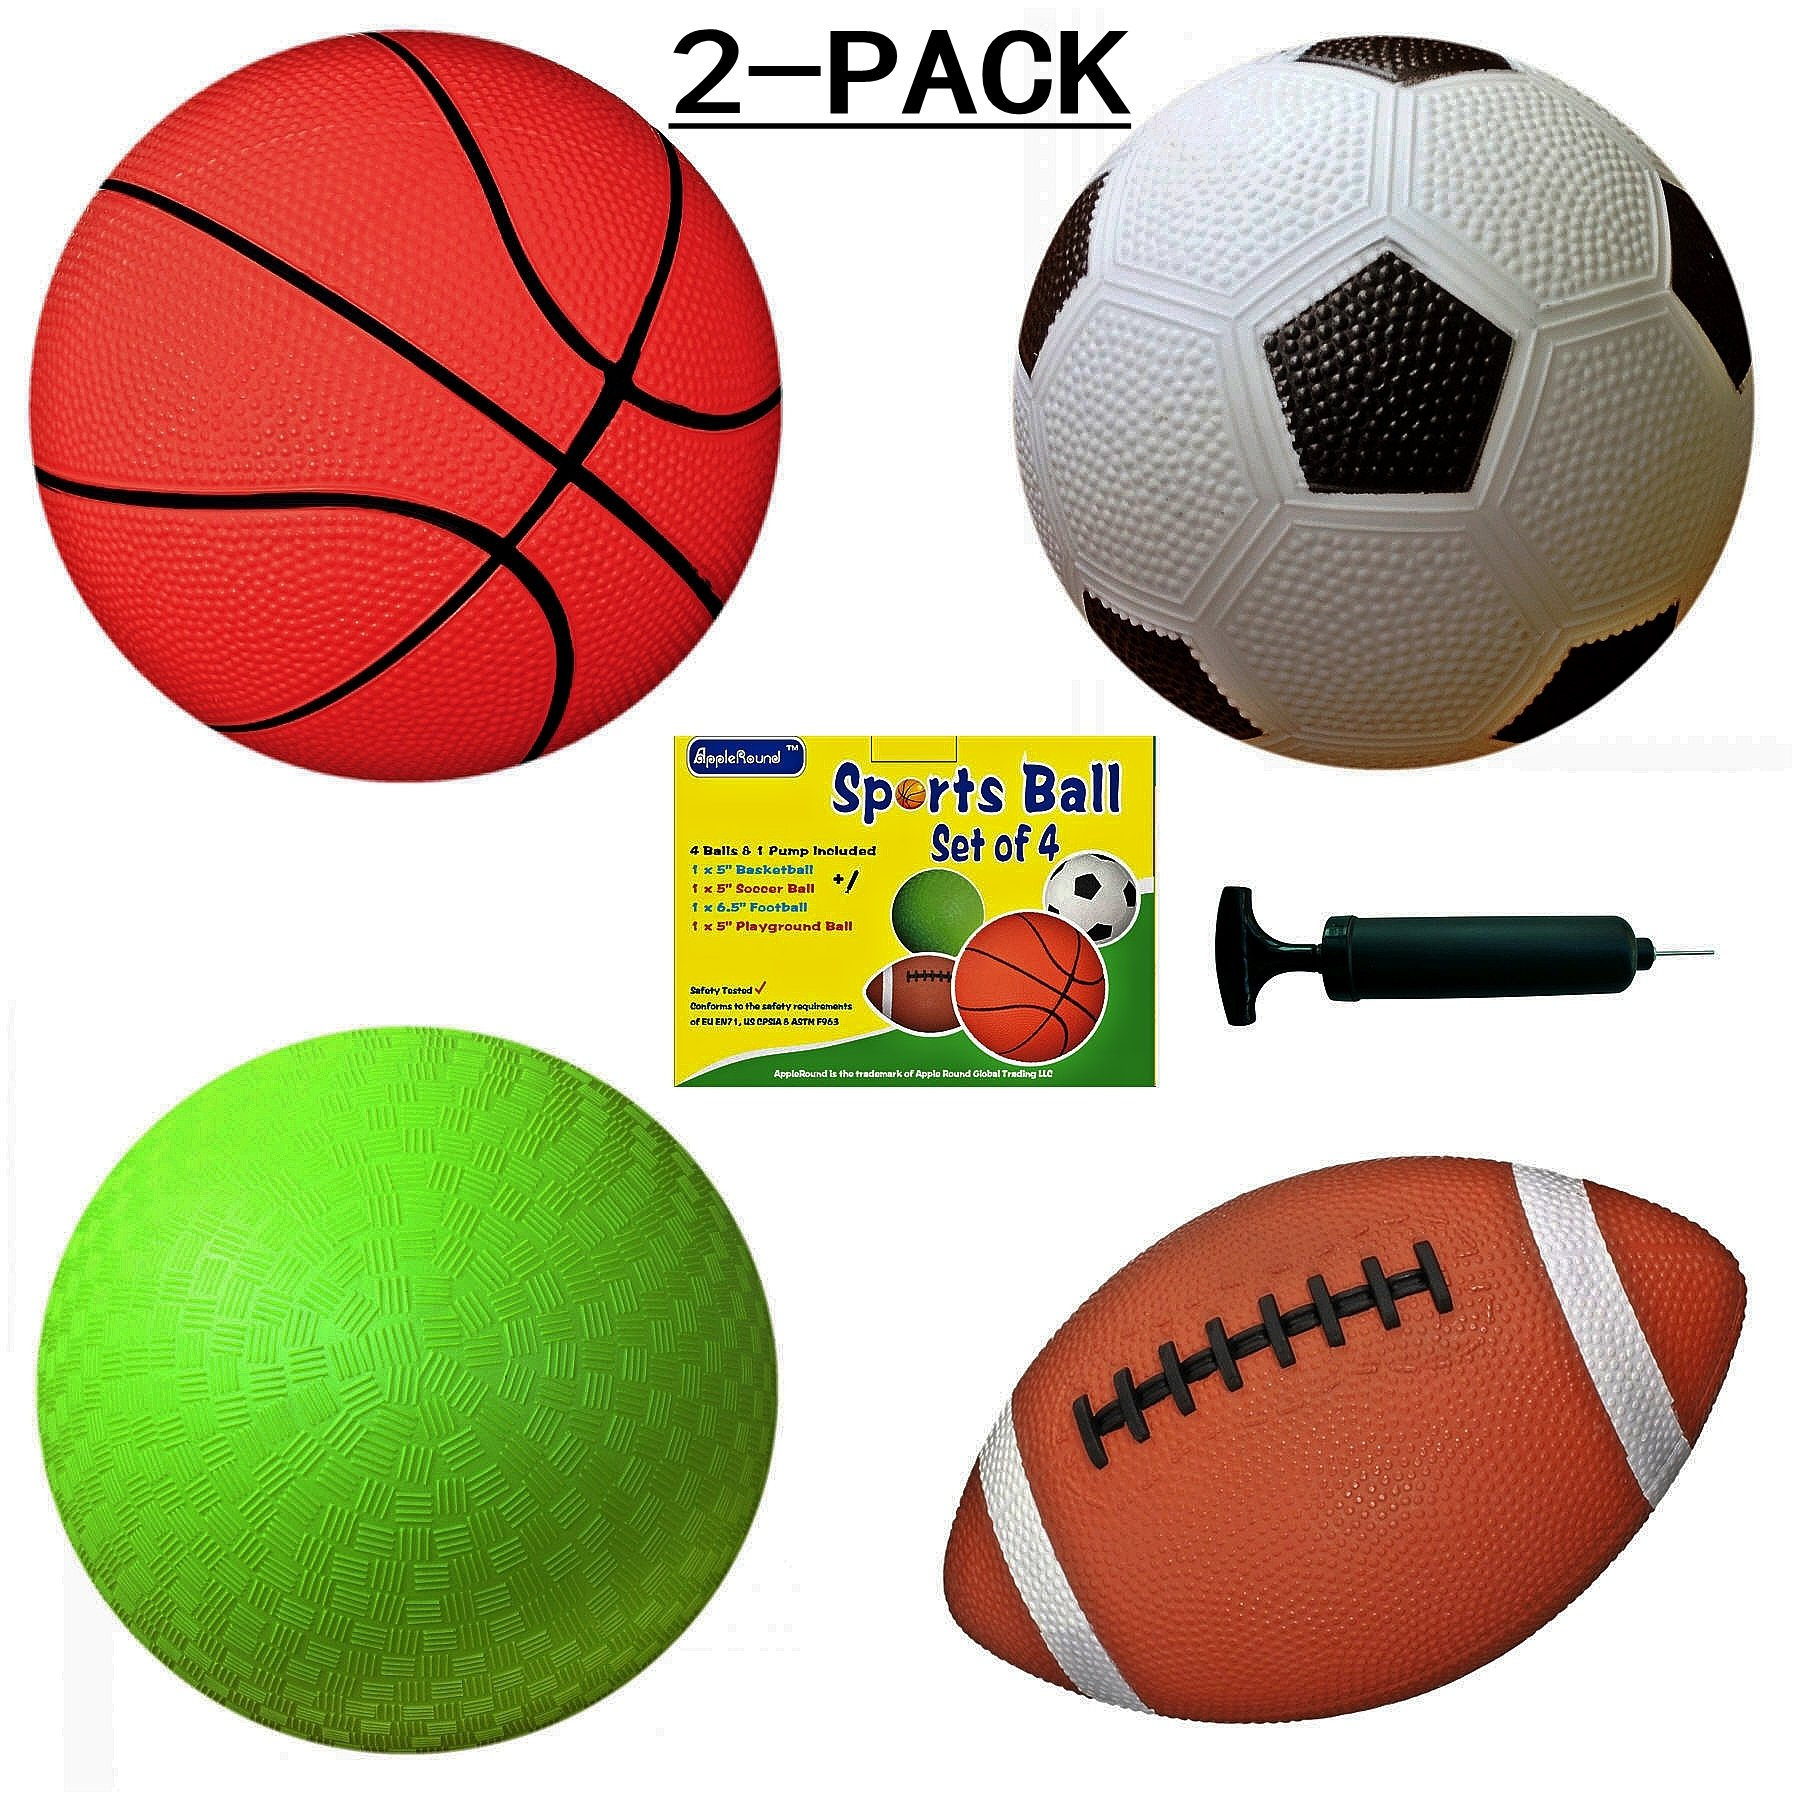 AppleRound 2-Pack: Each Pack Includes 4 Sports Balls and 1 Pump, 5'' Soccer Ball, 5'' Basketball, 5'' Playground Ball, 6.5'' Football